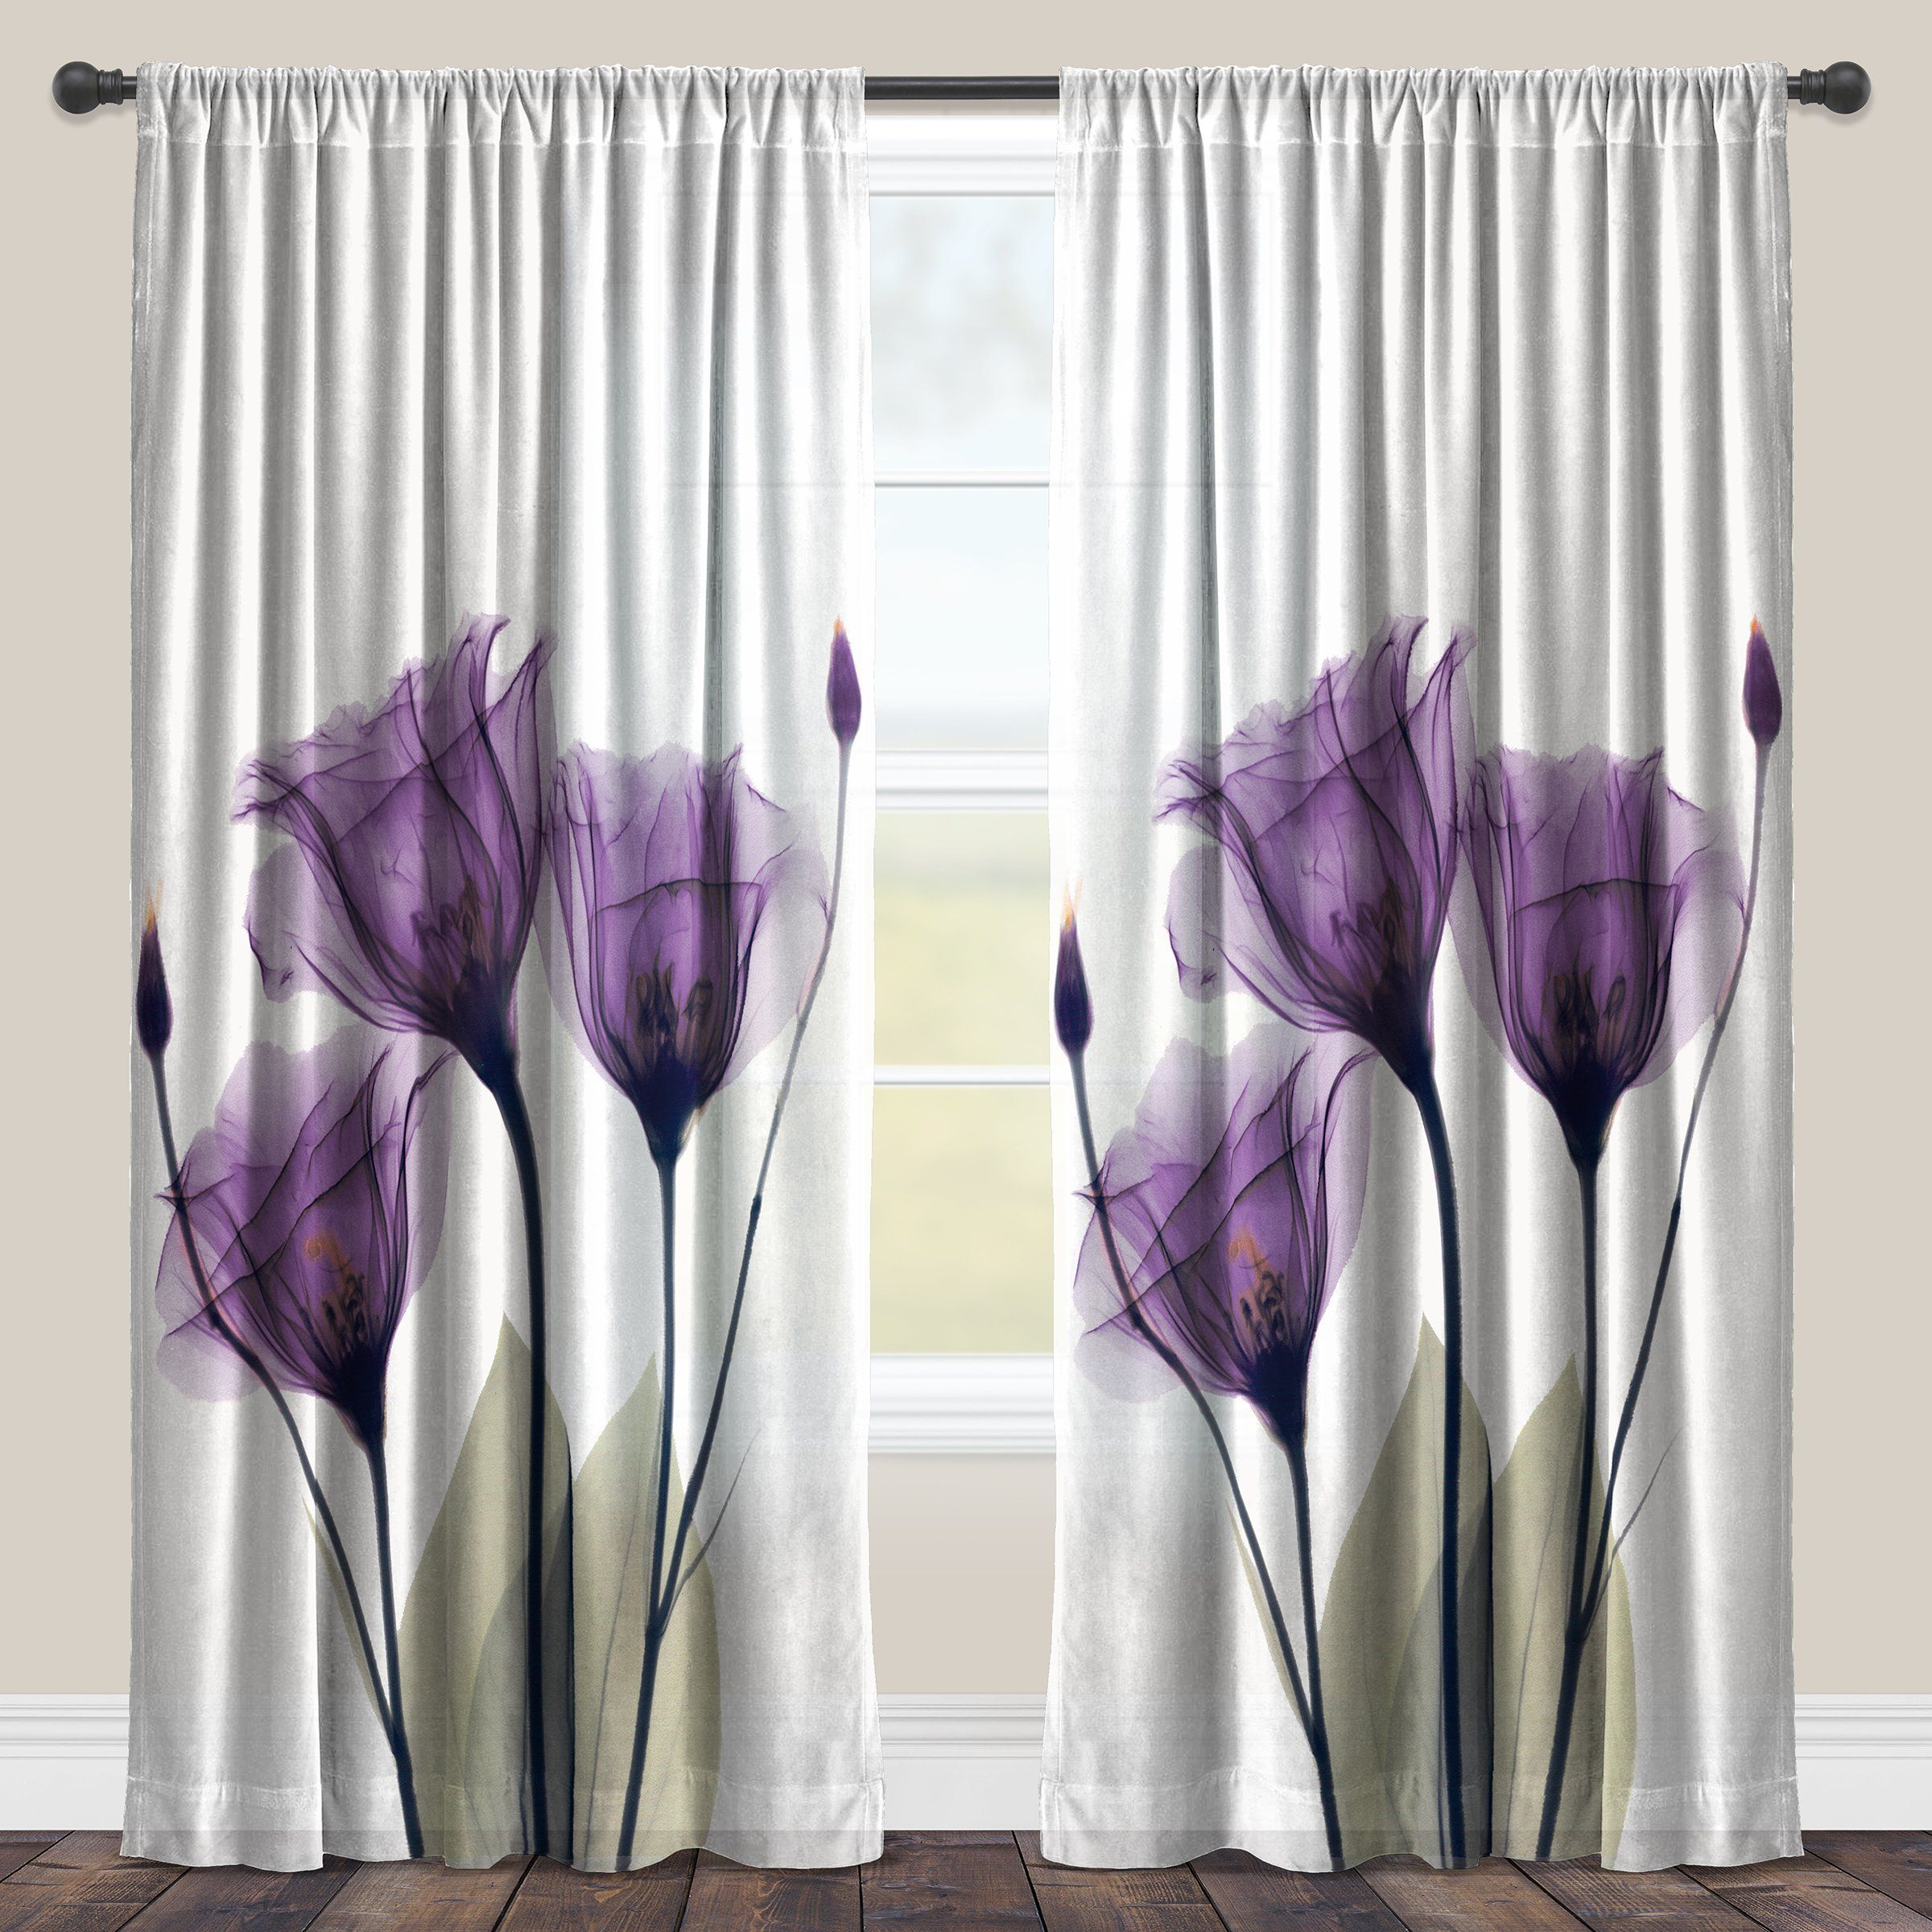 Laural Home Lavender Floral X Ray Sheer Curtain Panel 84 Single